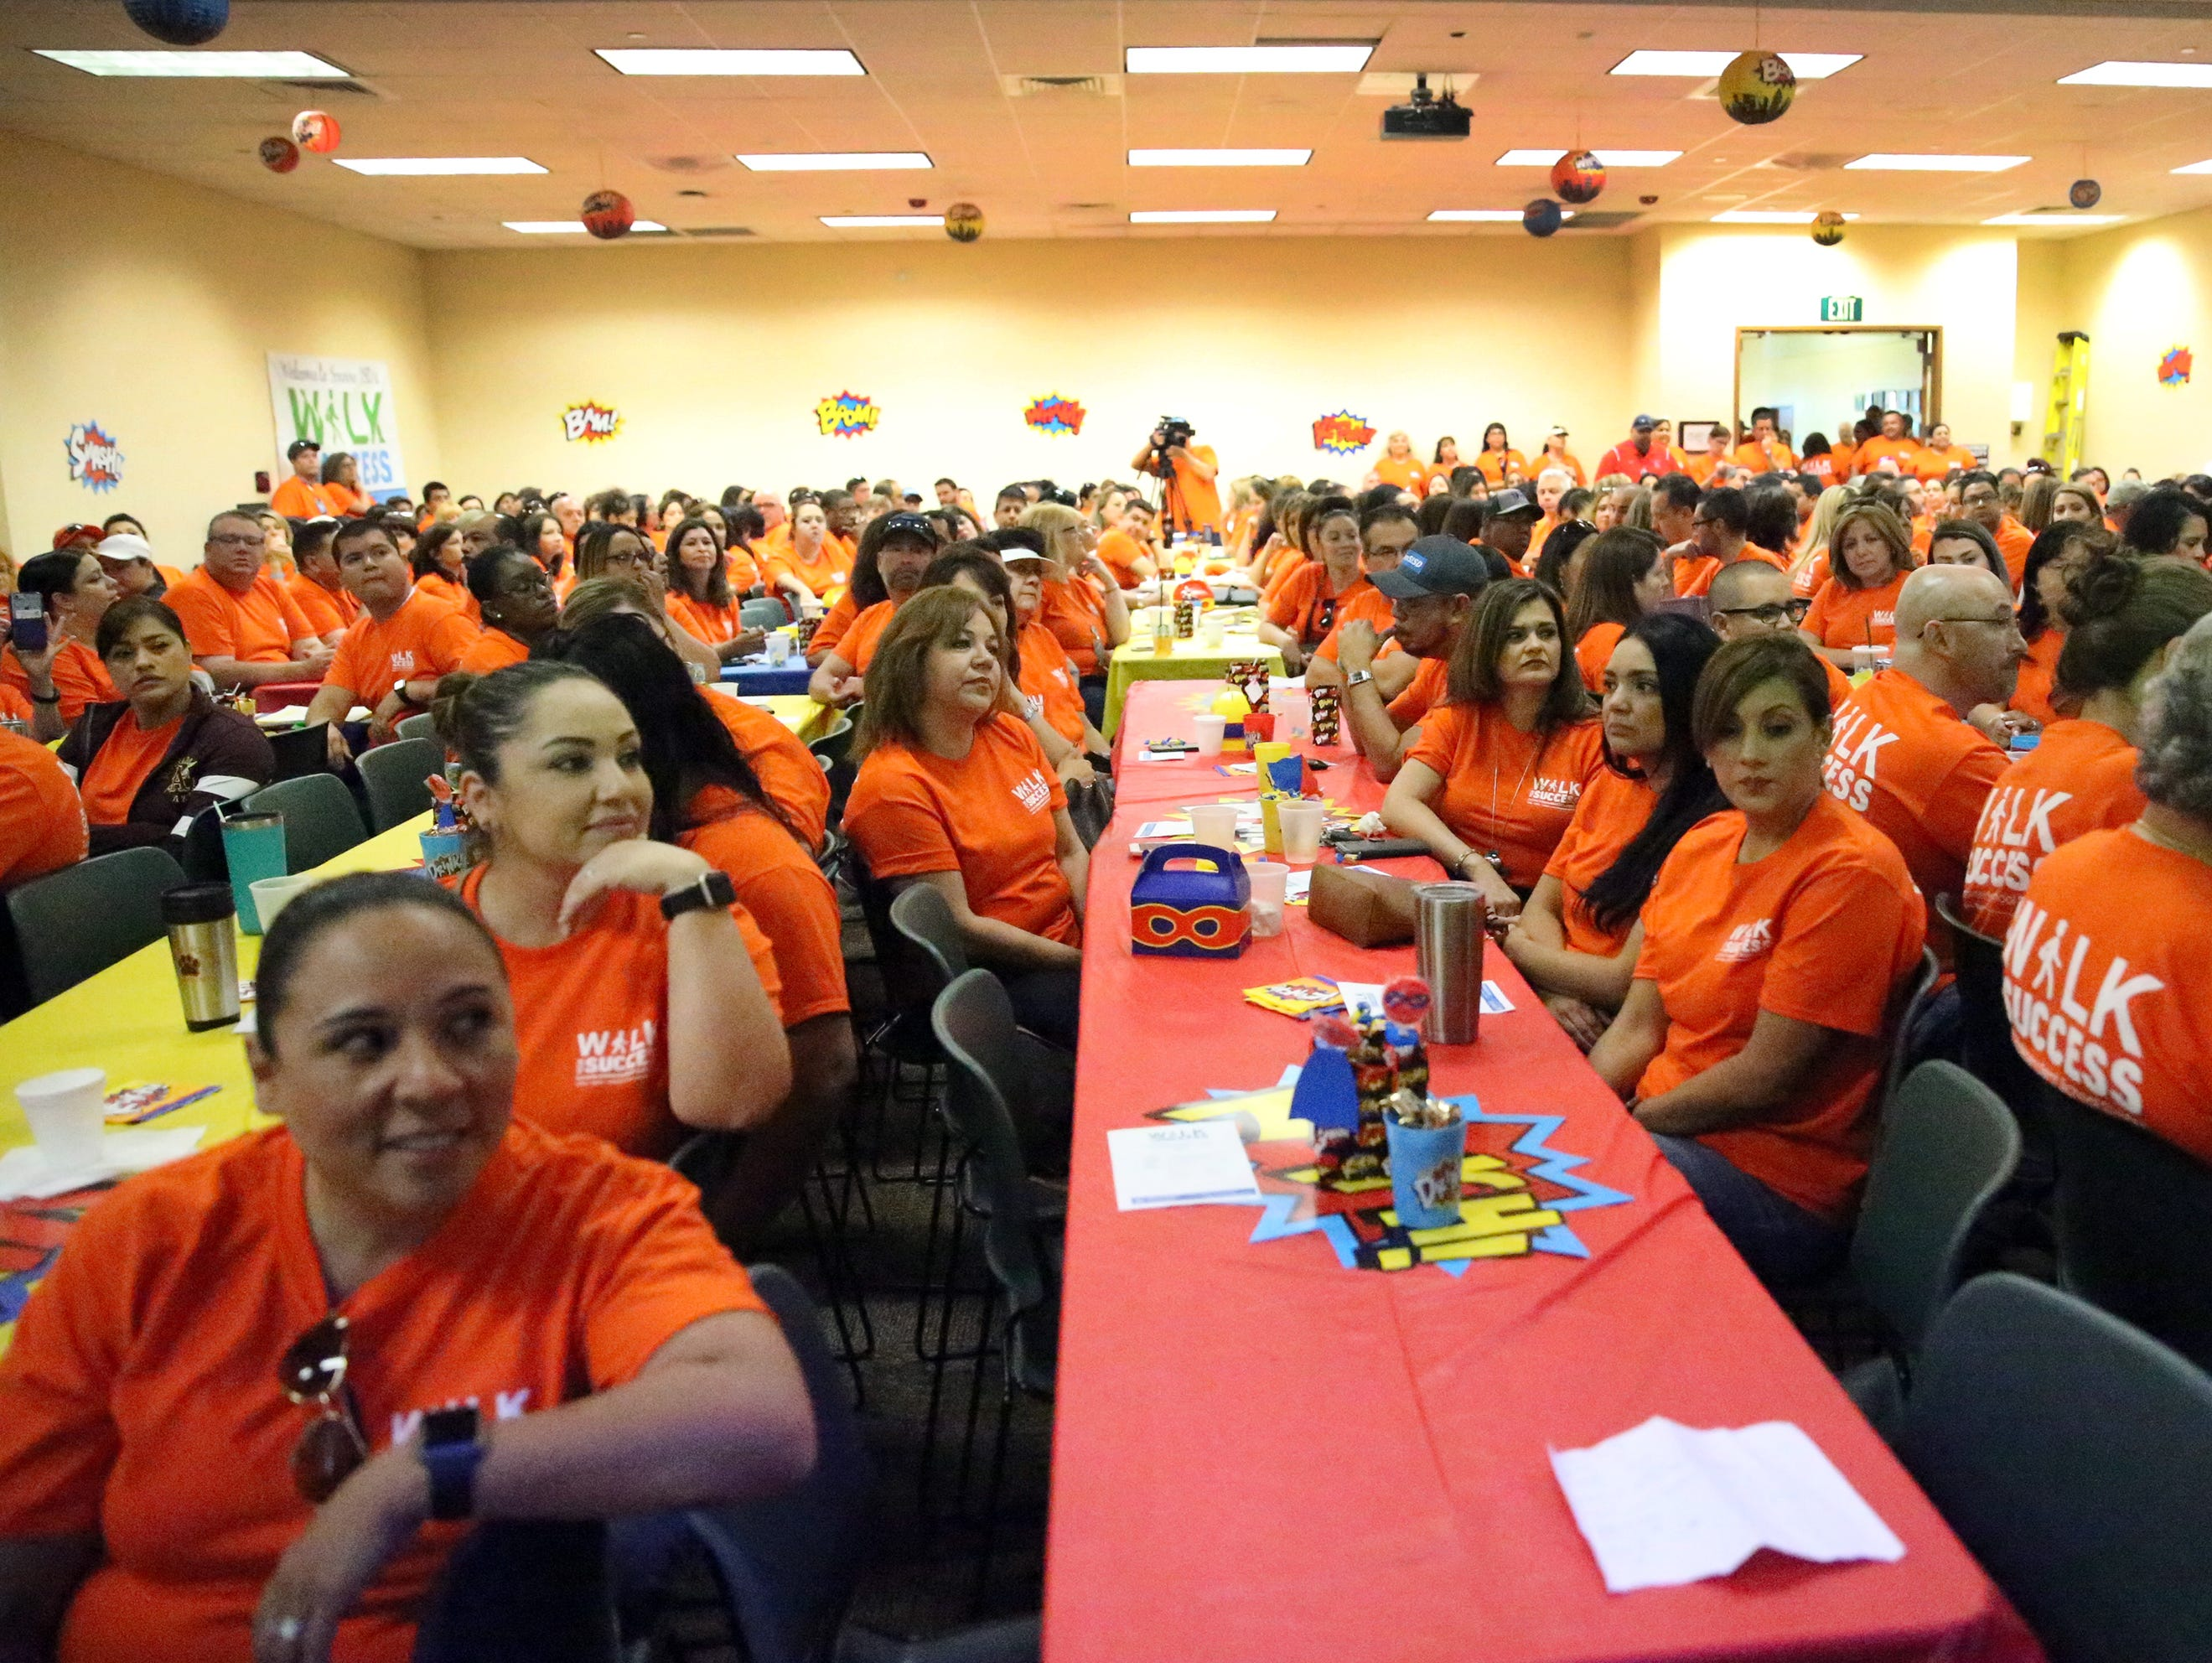 About 300 Socorro school district employees took part in the district's 5th annual Walk for Success Saturday.